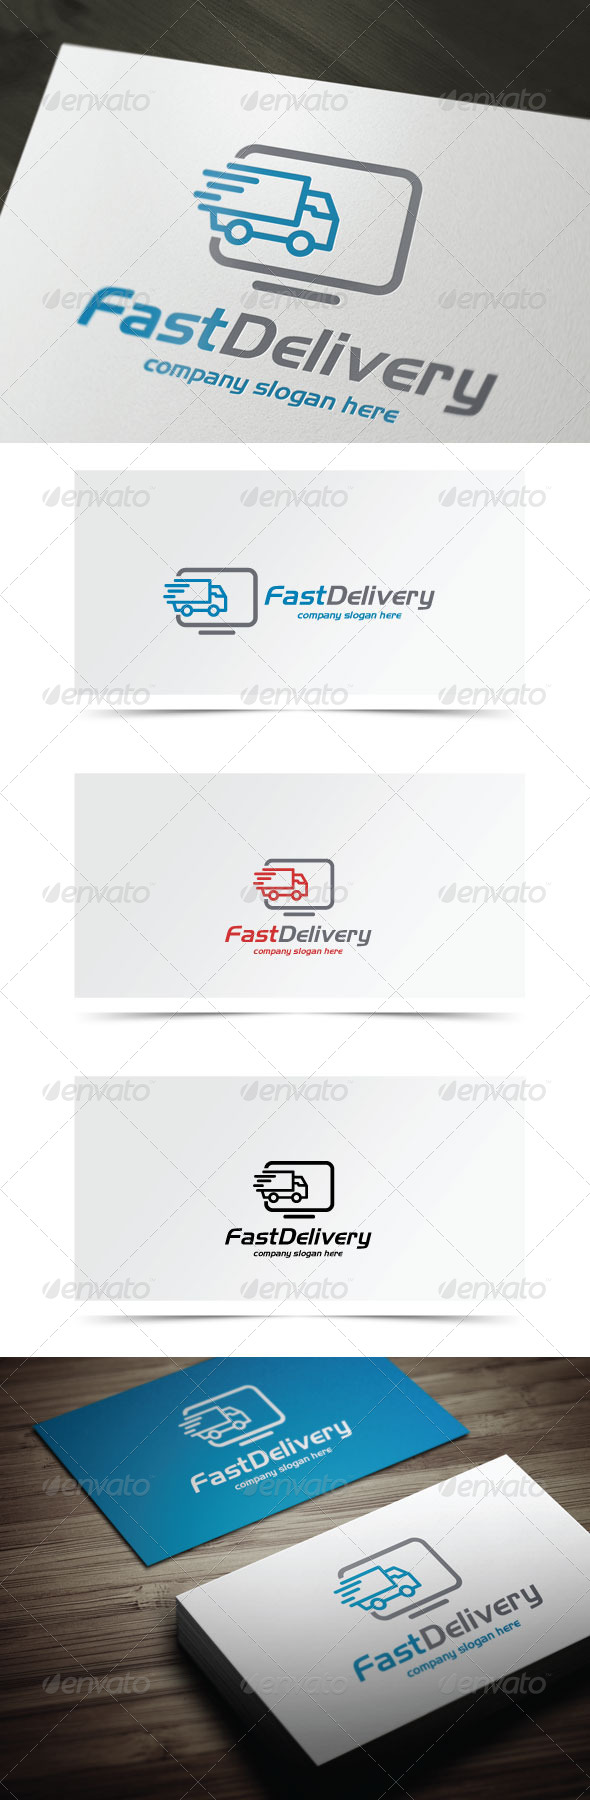 GraphicRiver Fast Delivery 7784386